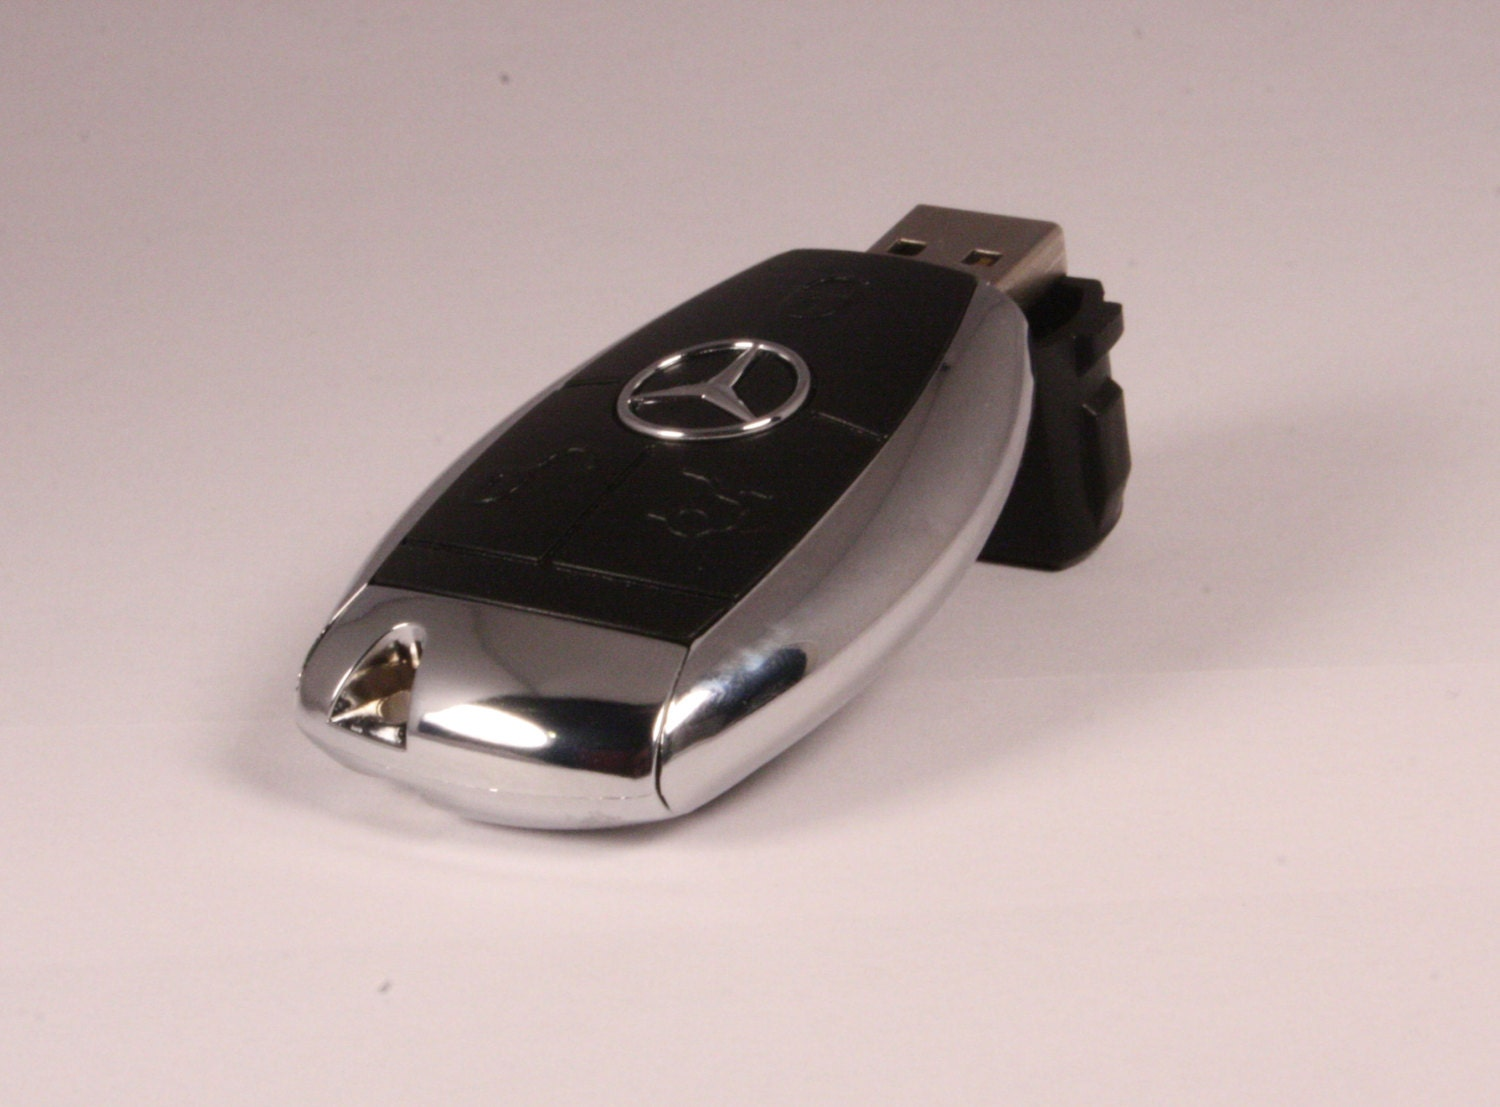 16gb Mercedes Benz Usb Flash Drive In The Style Of A By